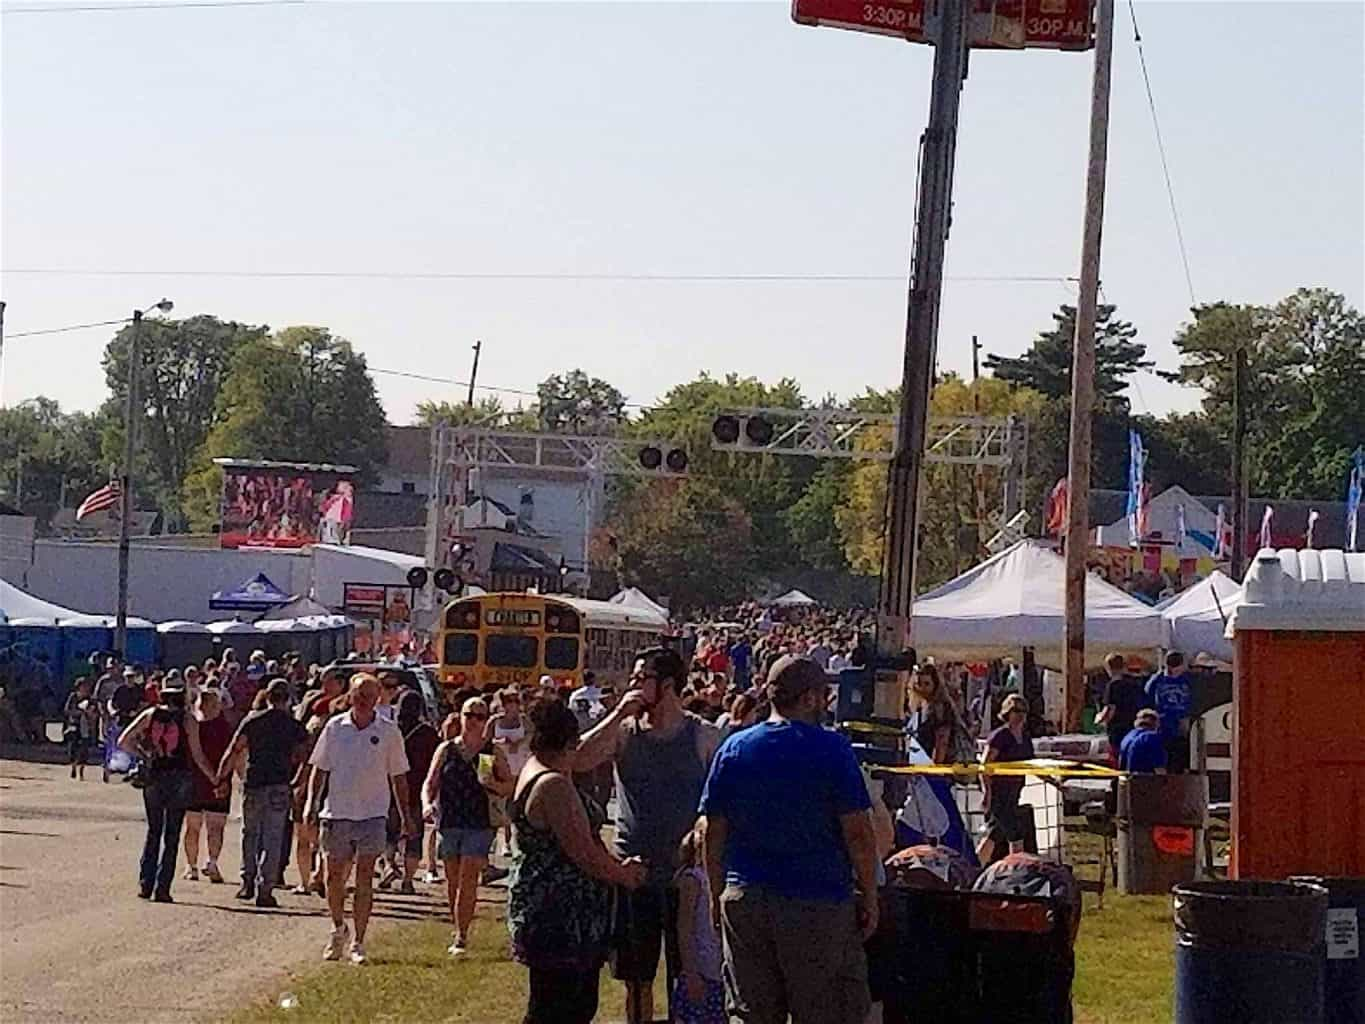 large crowd of people at Cranberry Festival Wisconsin